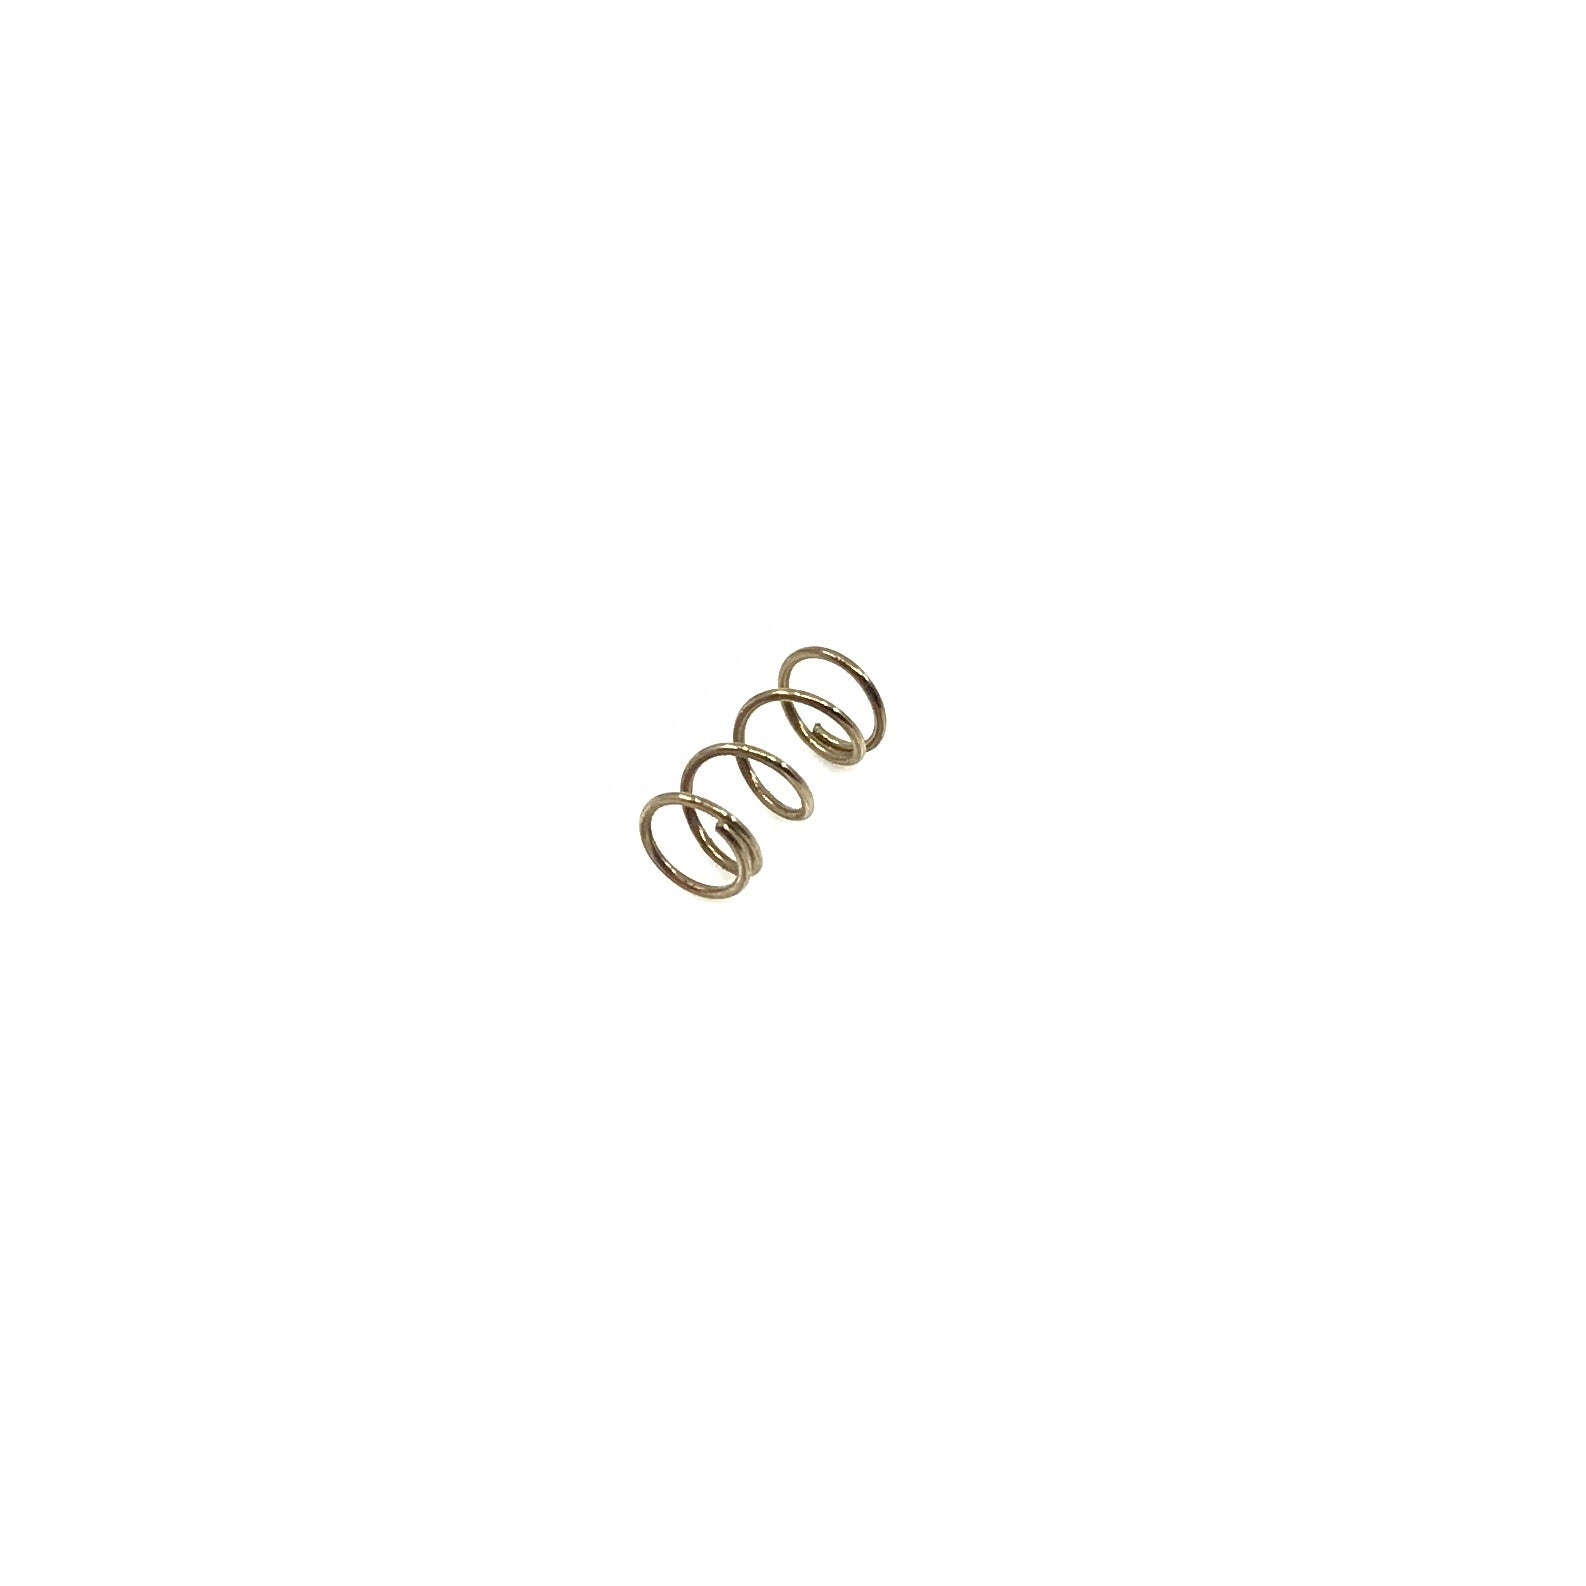 Rossi 500 Centre Pin Spring,Gunsmith's Parts- Canada Brass